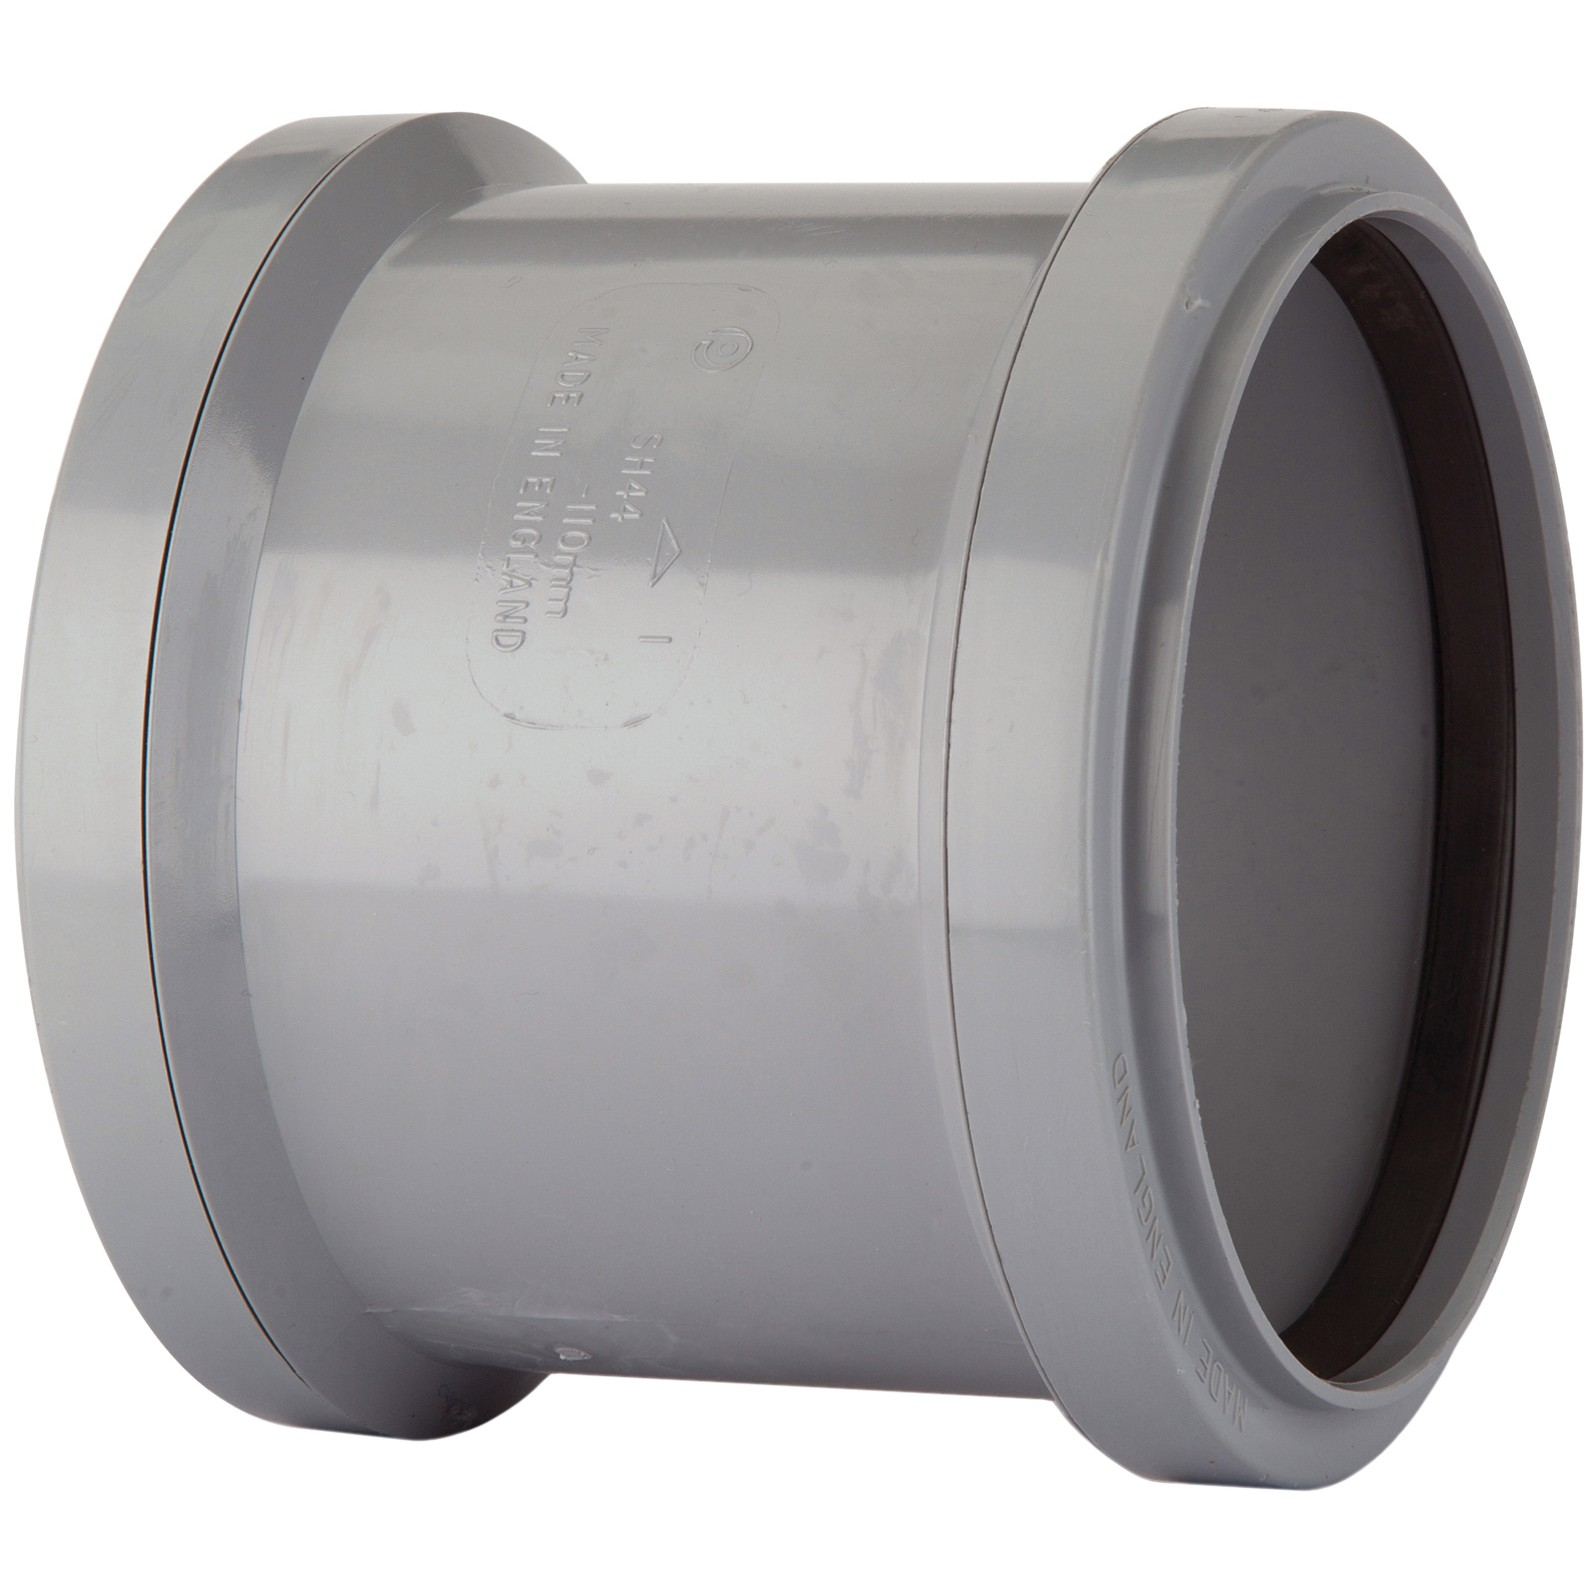 Polypipe 82mm Soil Double Socket Coupler - Grey